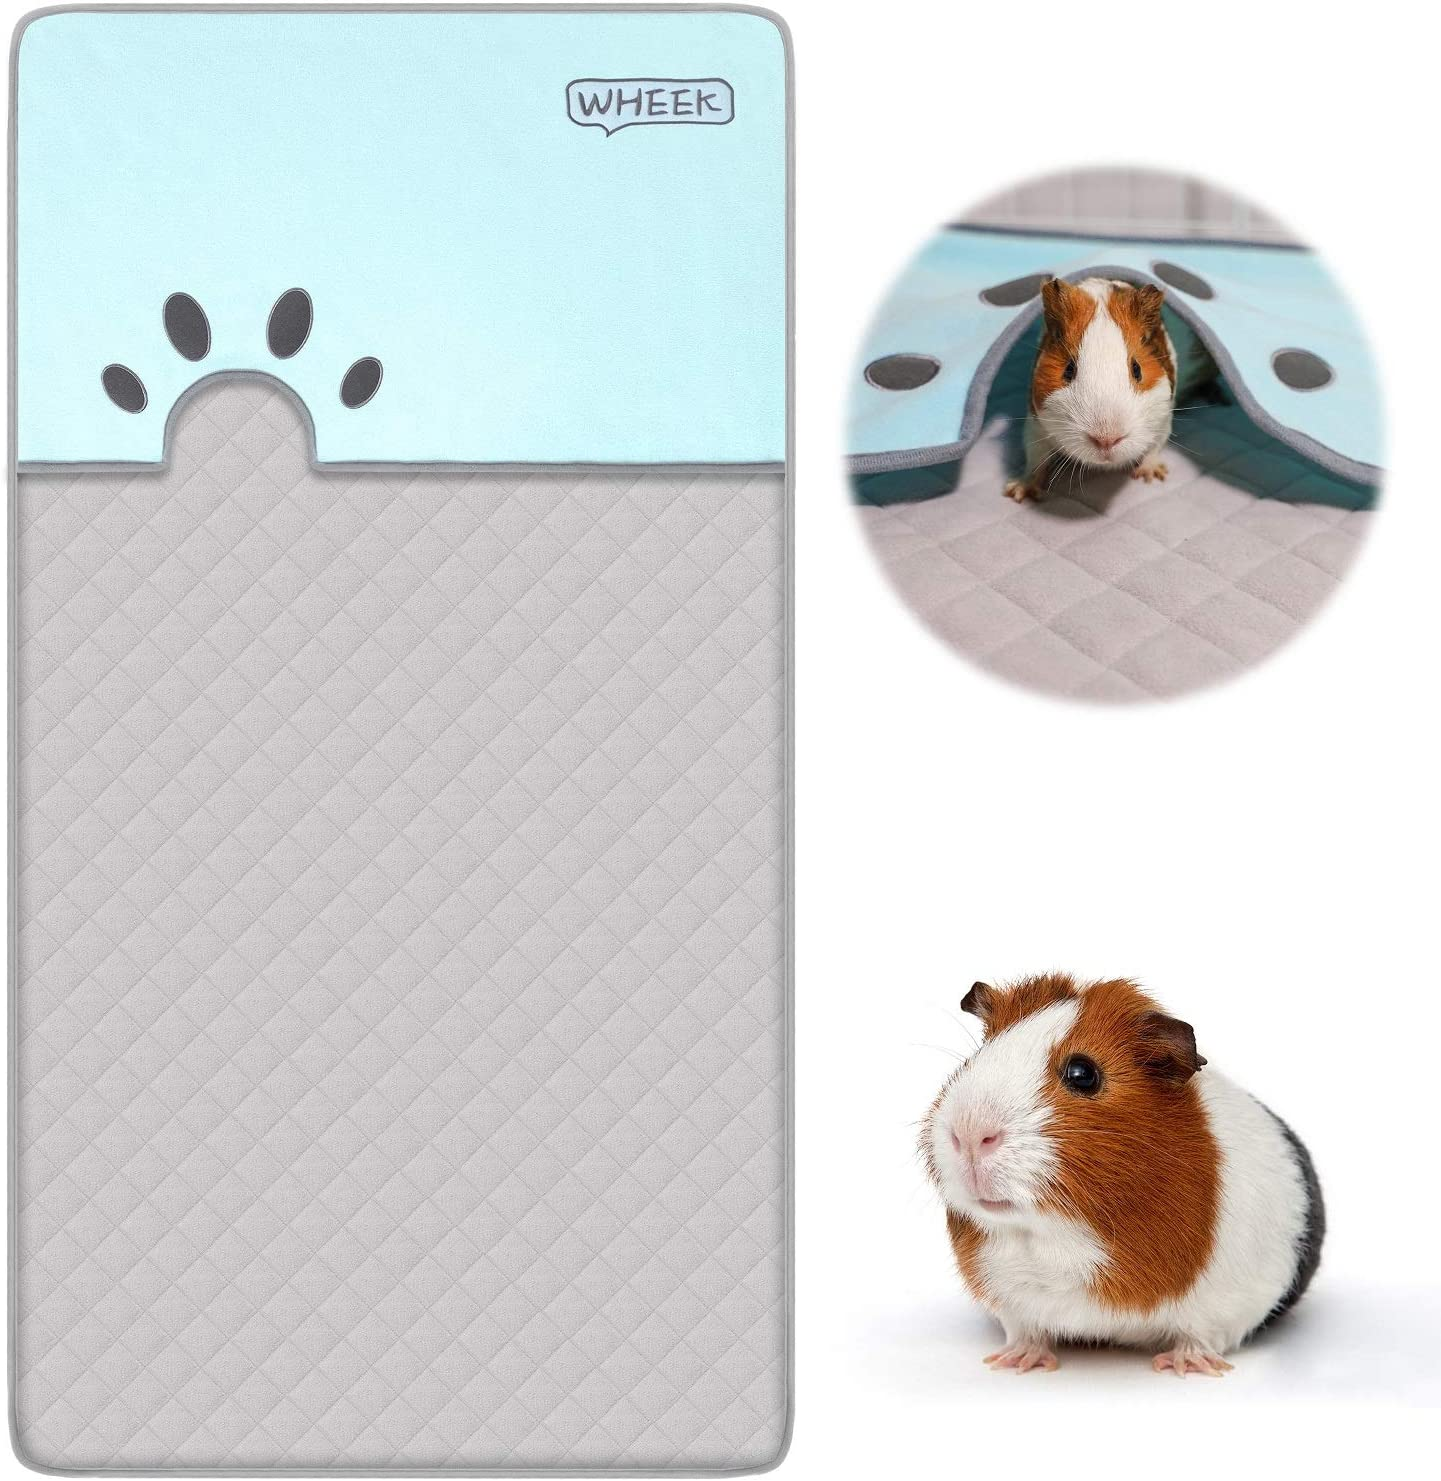 Piggy Blanket Colorful Dots on Black  Guinea Pig C/&C 2x4 Fleece Cage Liner Absorbent Layer Cozy and Clean Rabbit Hedgehog